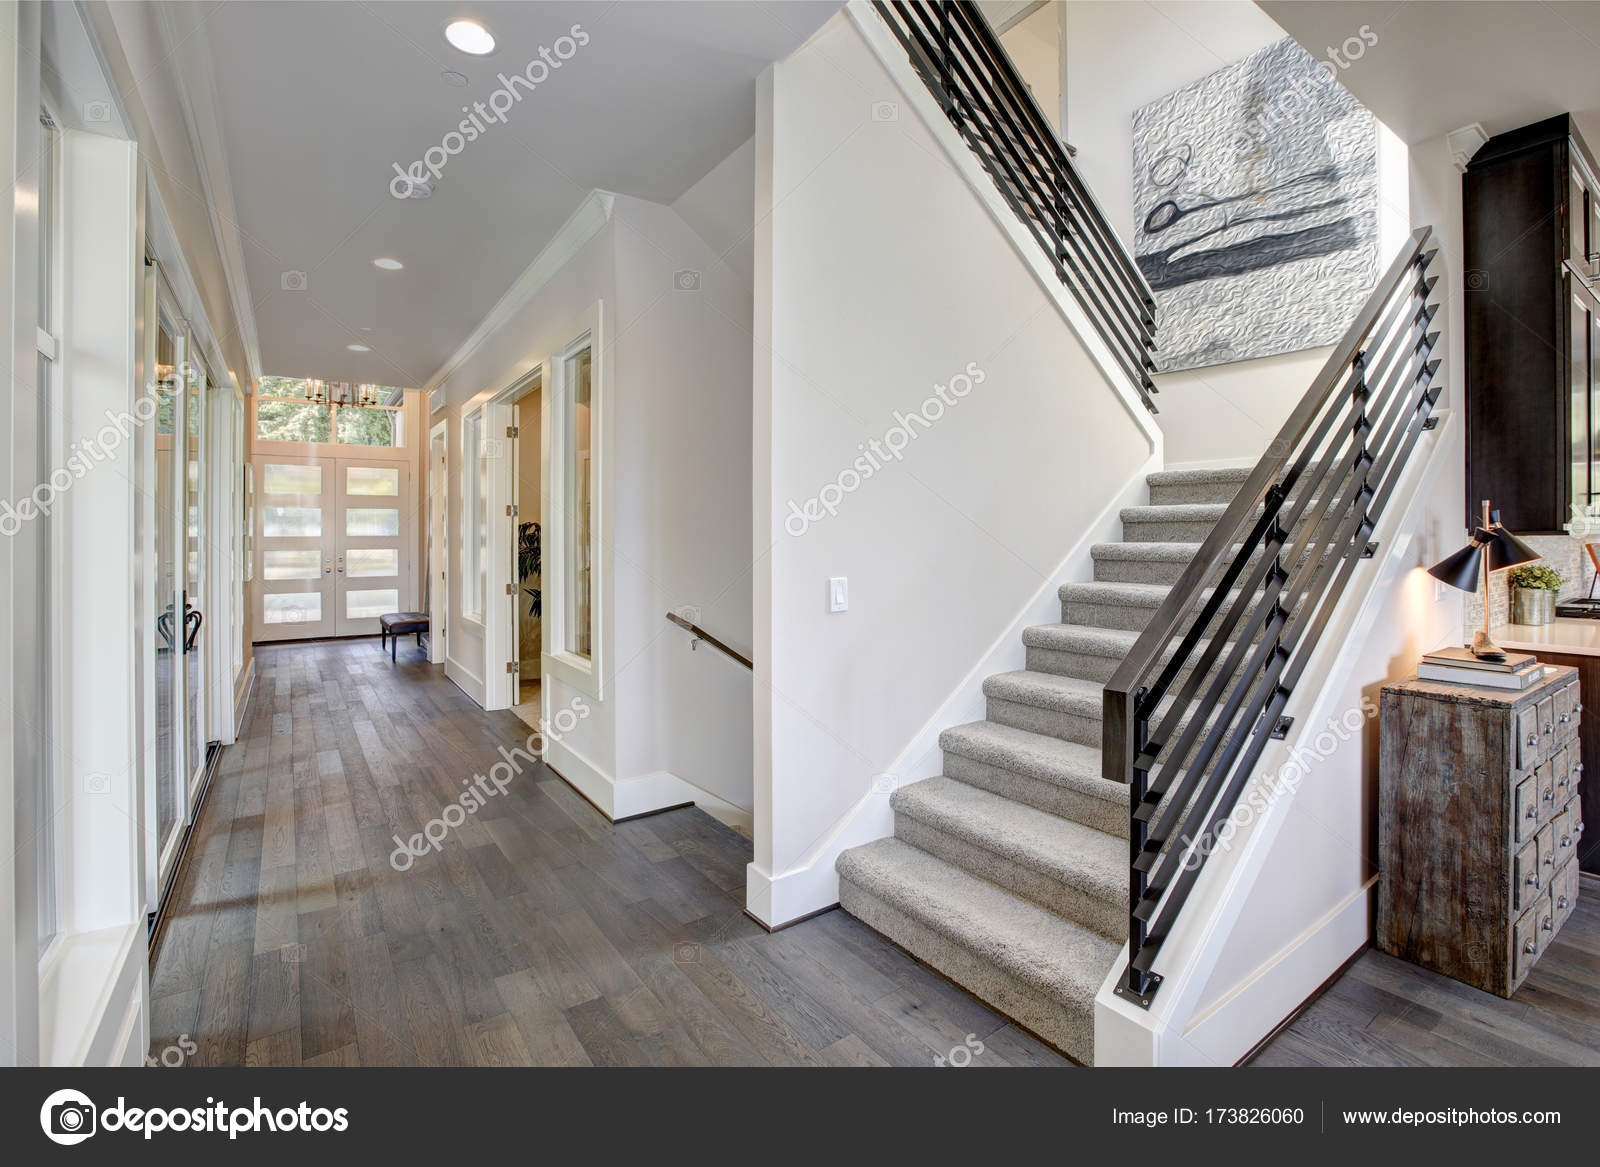 Pmages Carpet Runners On Stairs Hallway Features A Staircase | Gray Carpet On Stairs | Contemporary | Geometric | Design | Grey Pattern | Farmhouse